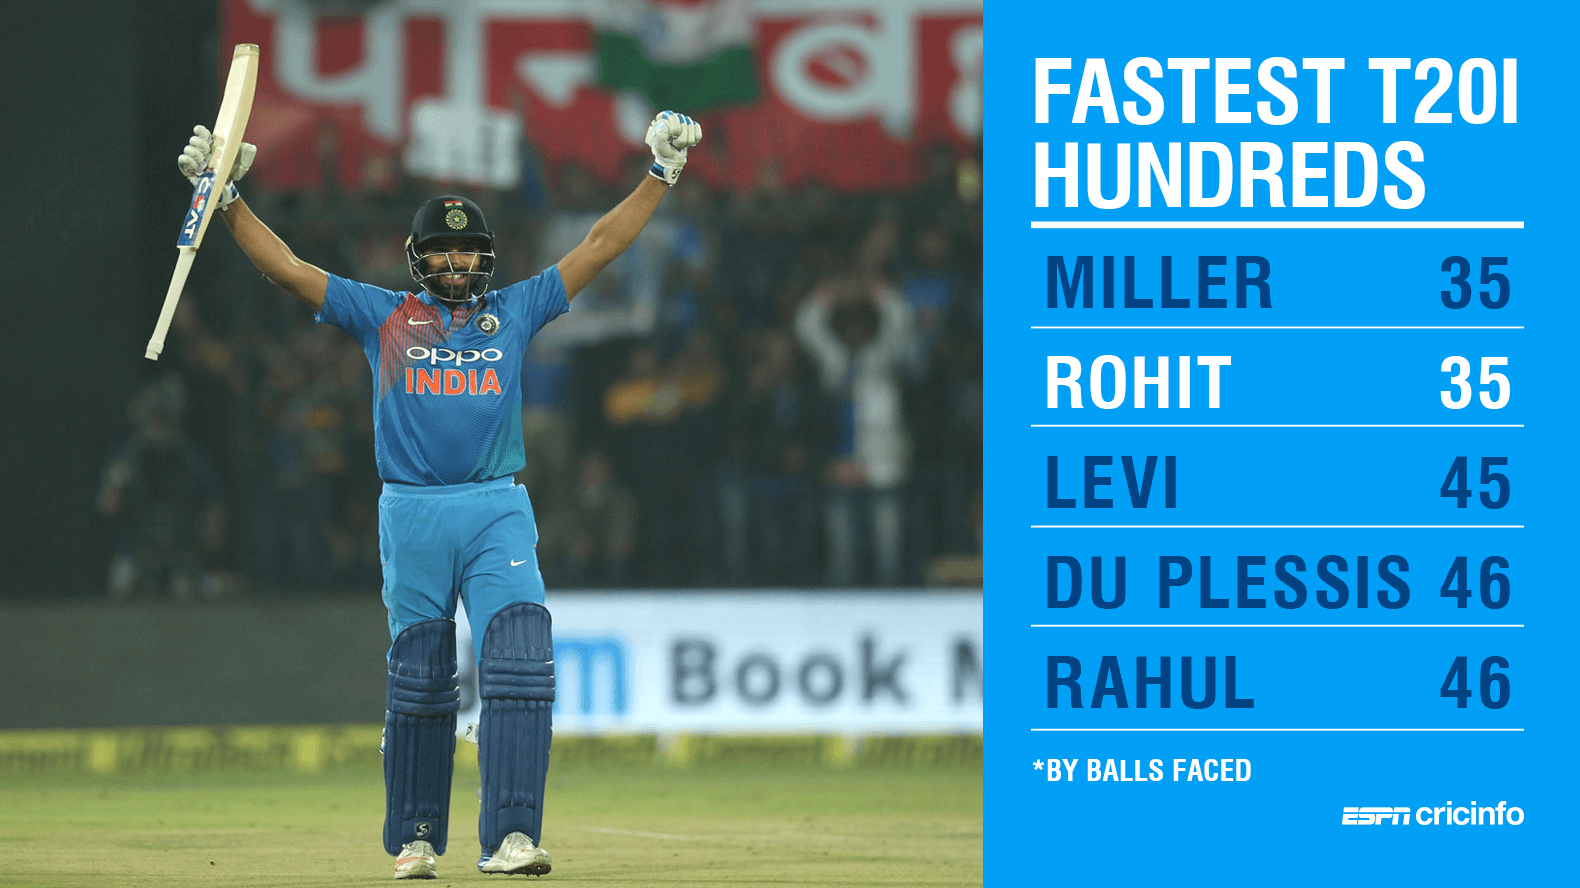 Rohit smashed the joint fastest T20I century